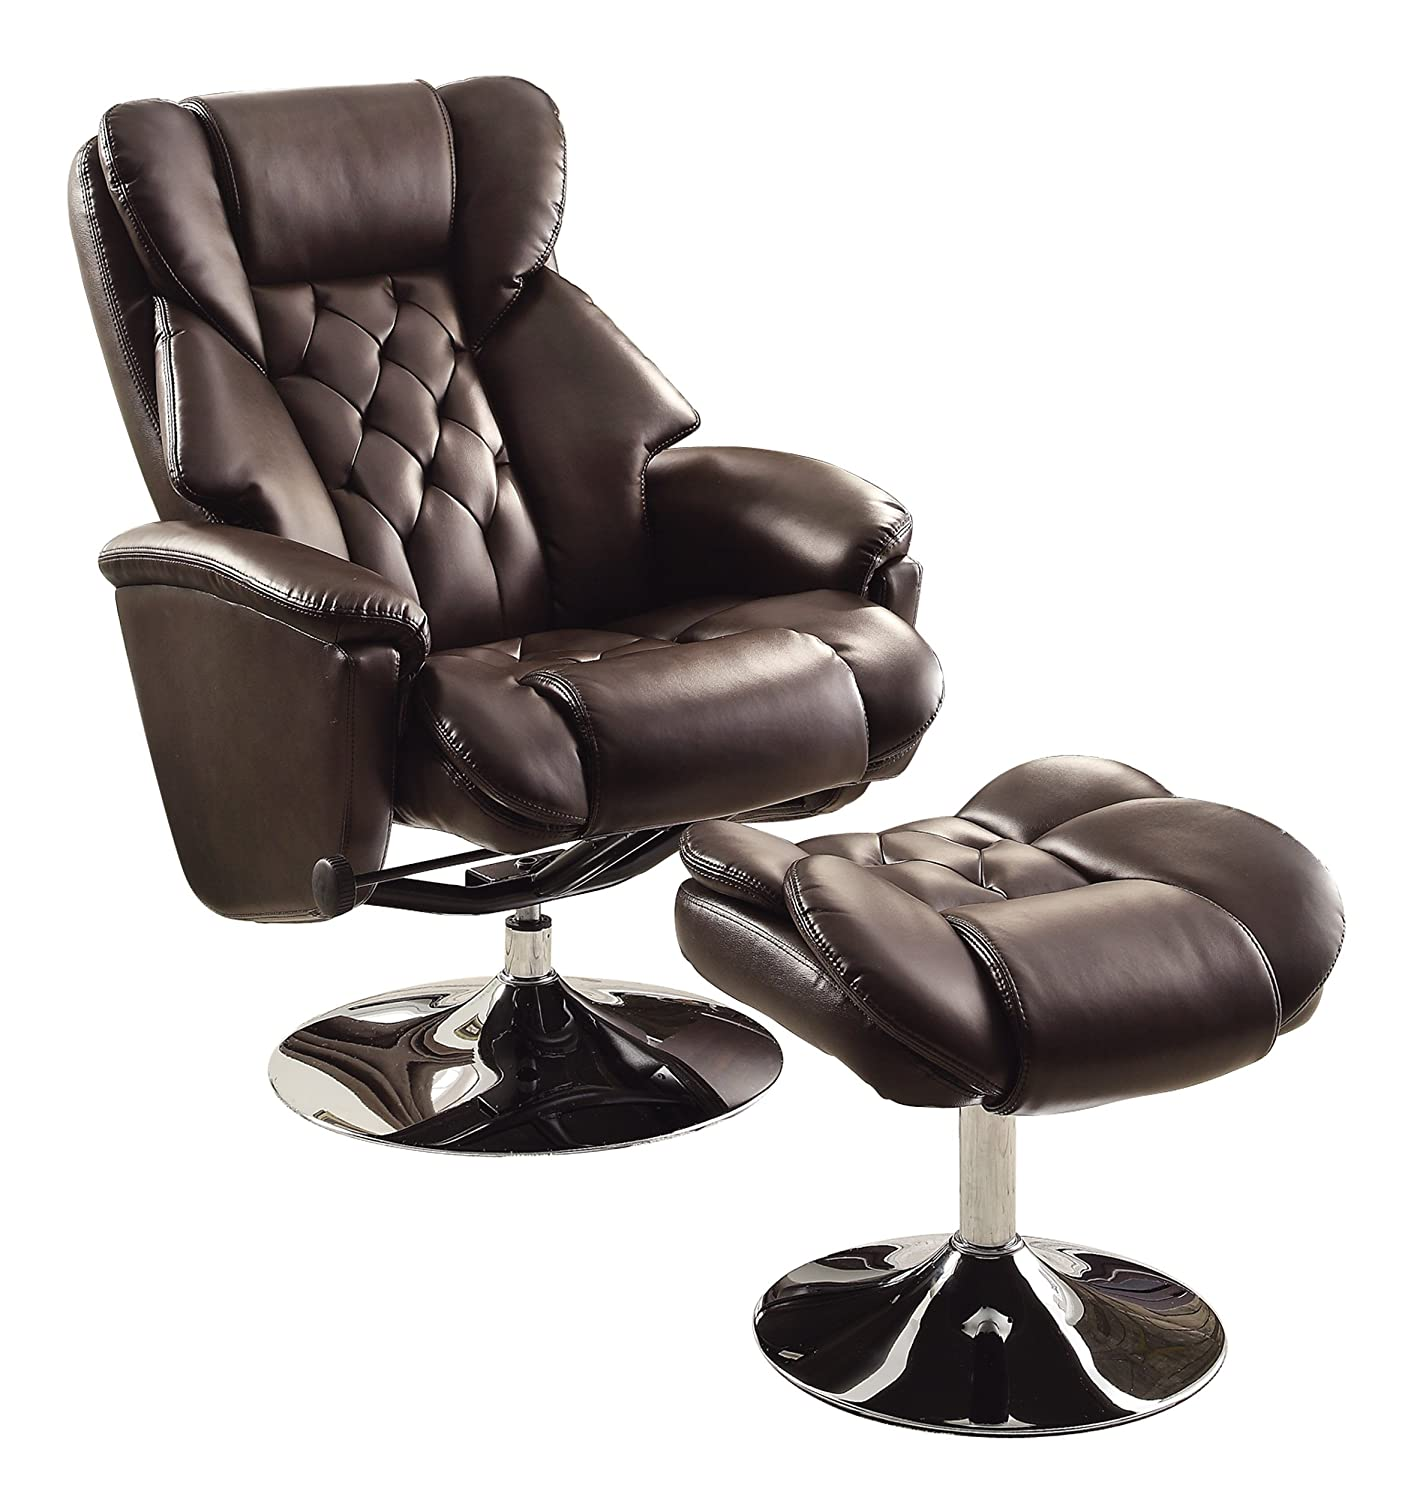 Reclining Chairs with Foot Rest in 2018